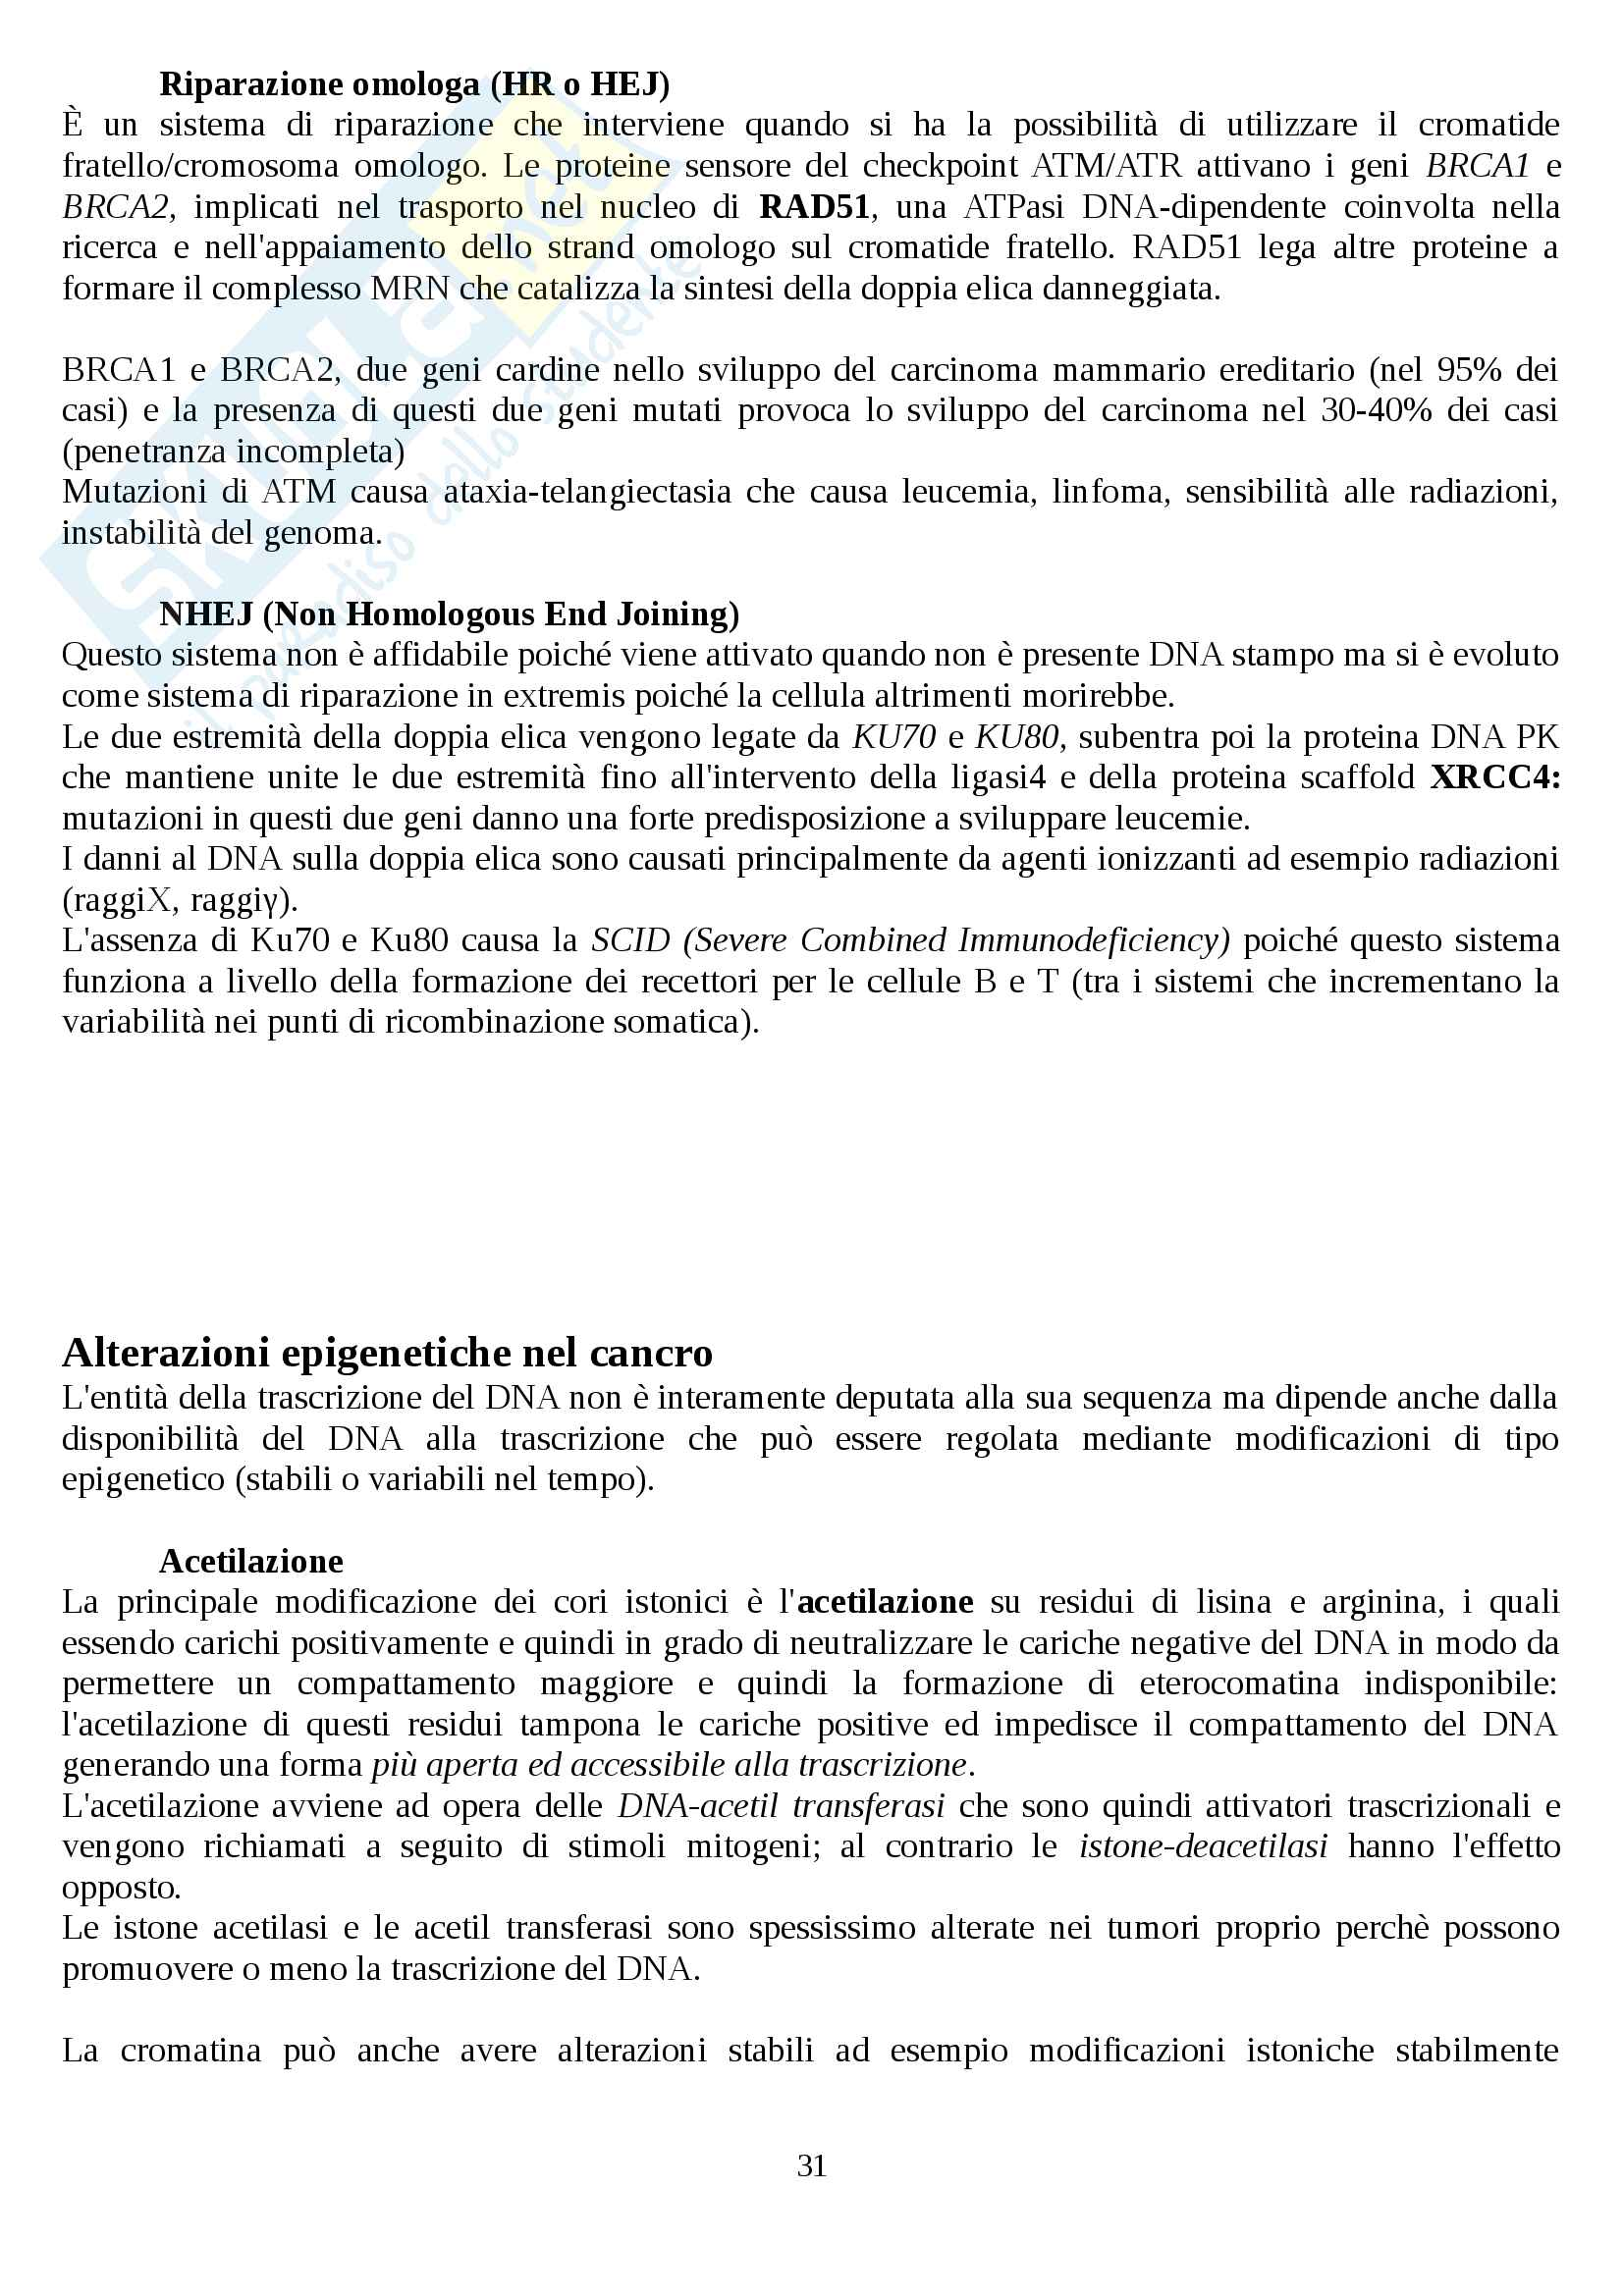 Oncologia generale Pag. 31